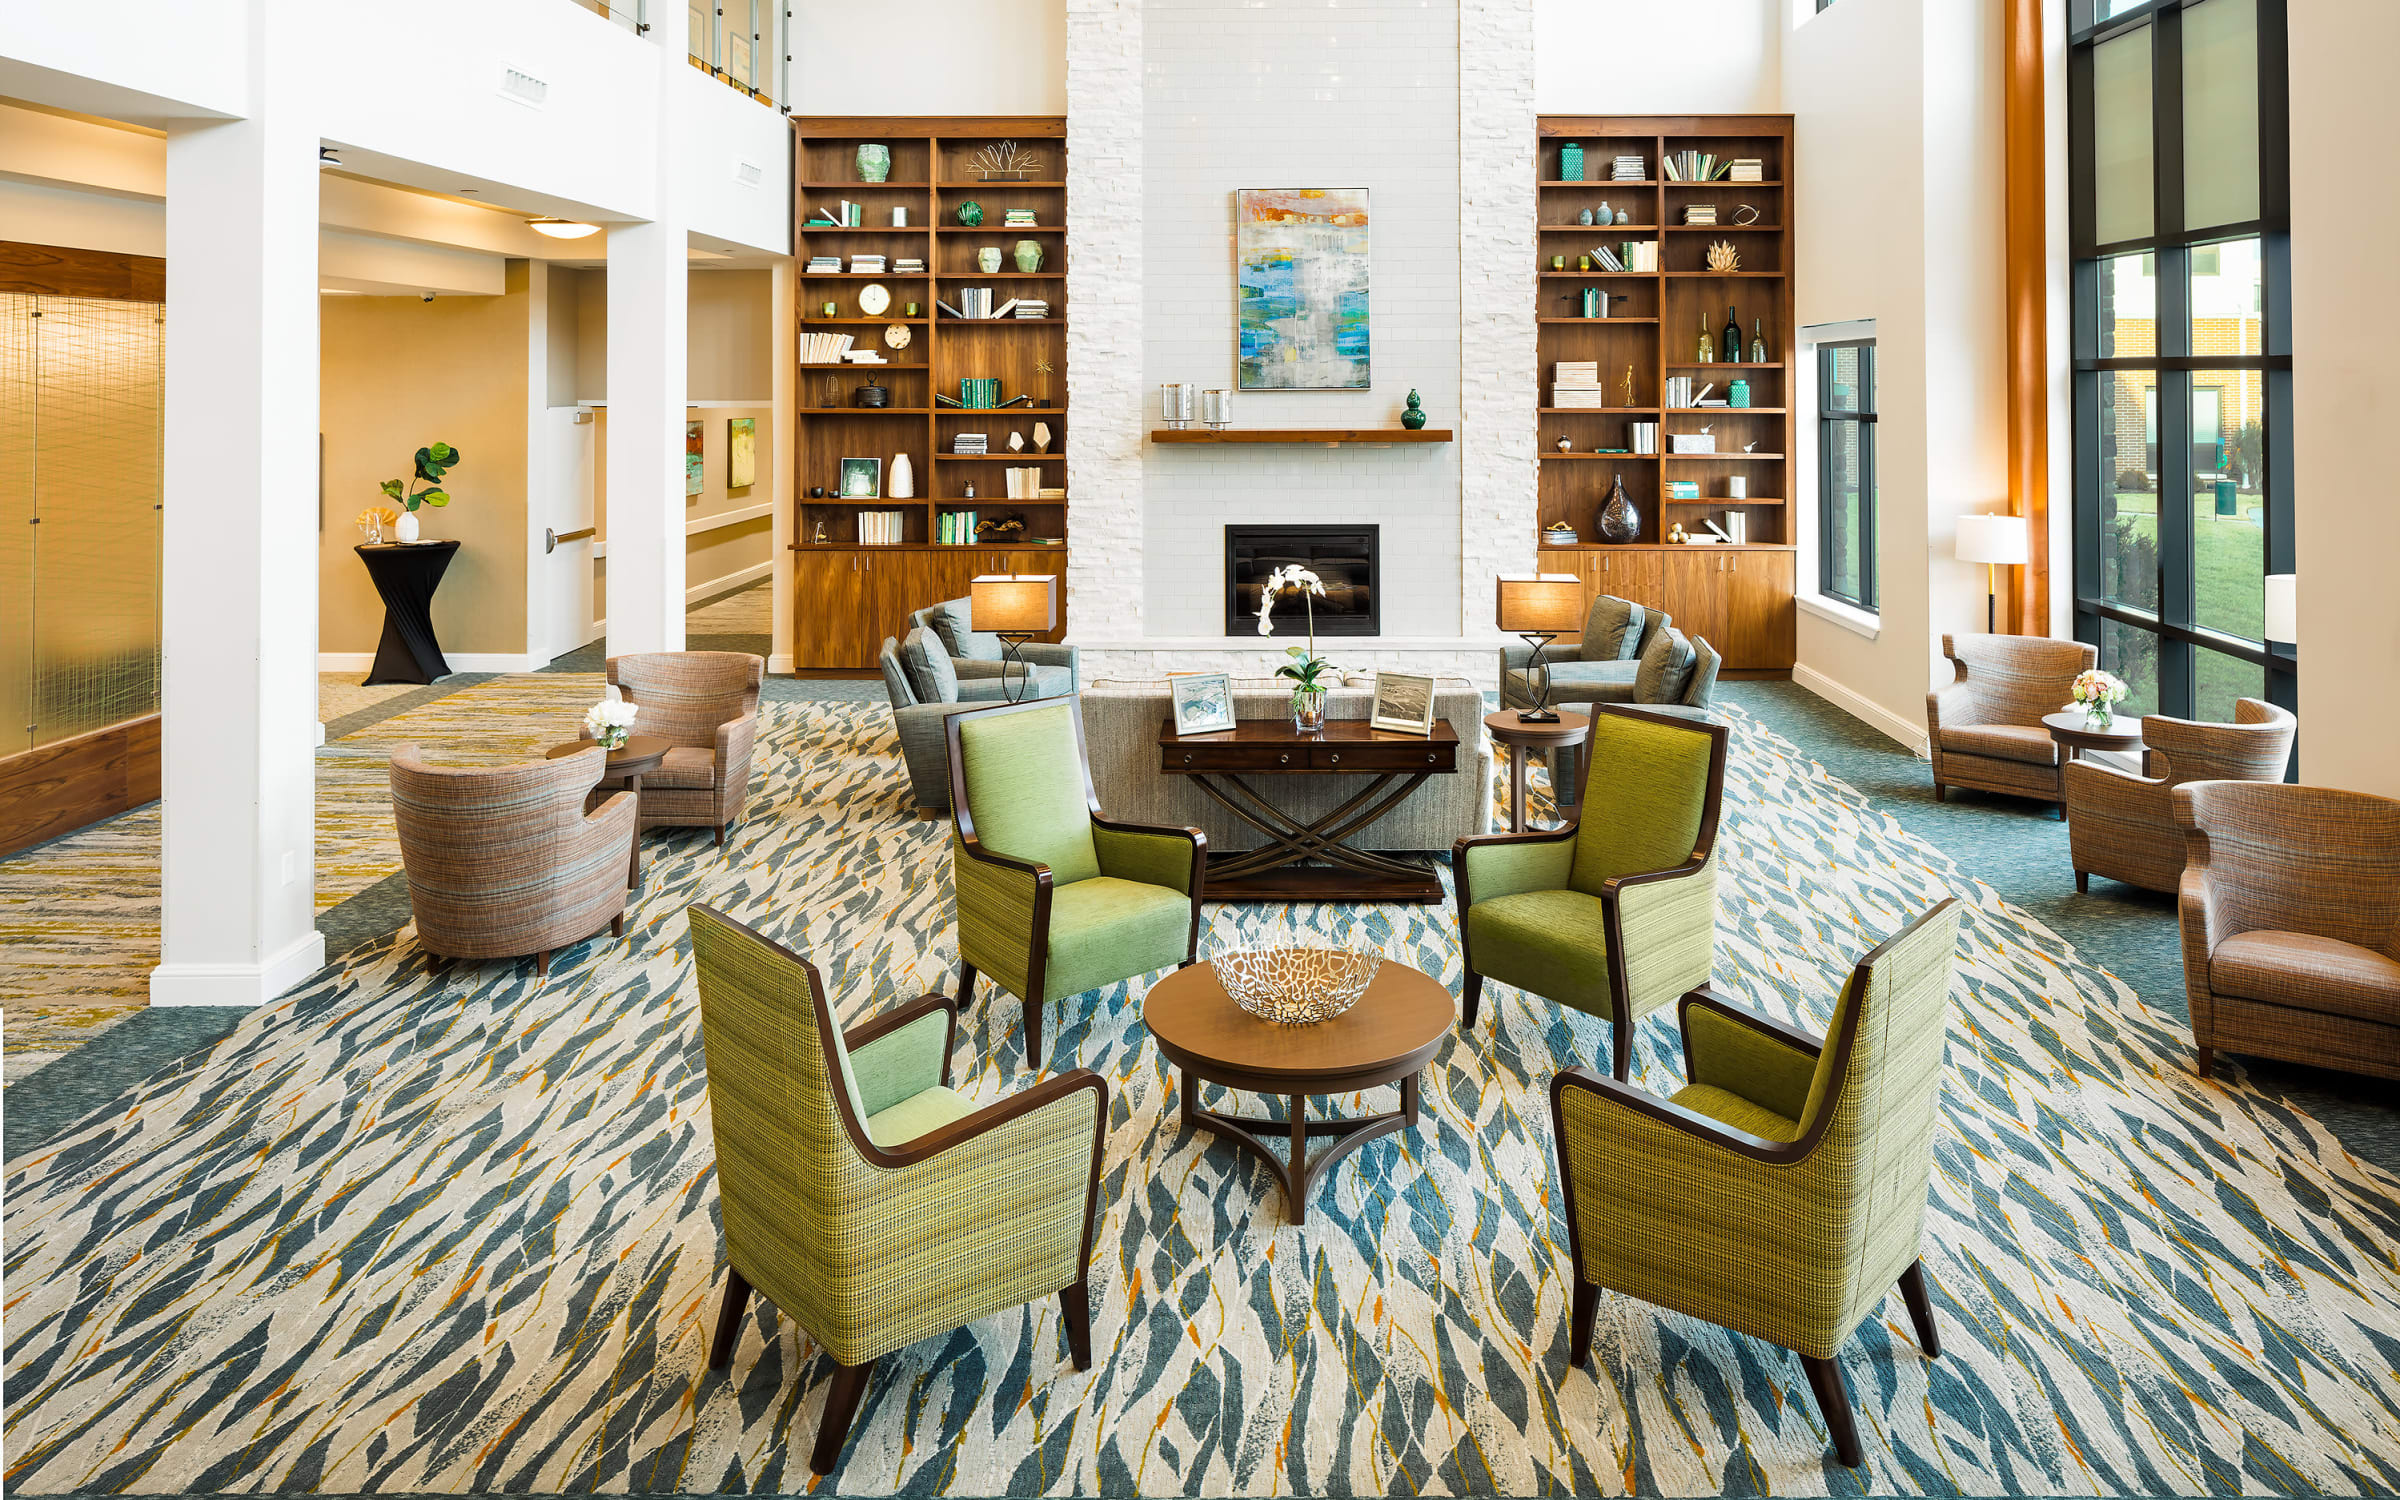 Services and amenities at Anthology of Mason in Mason, Ohio